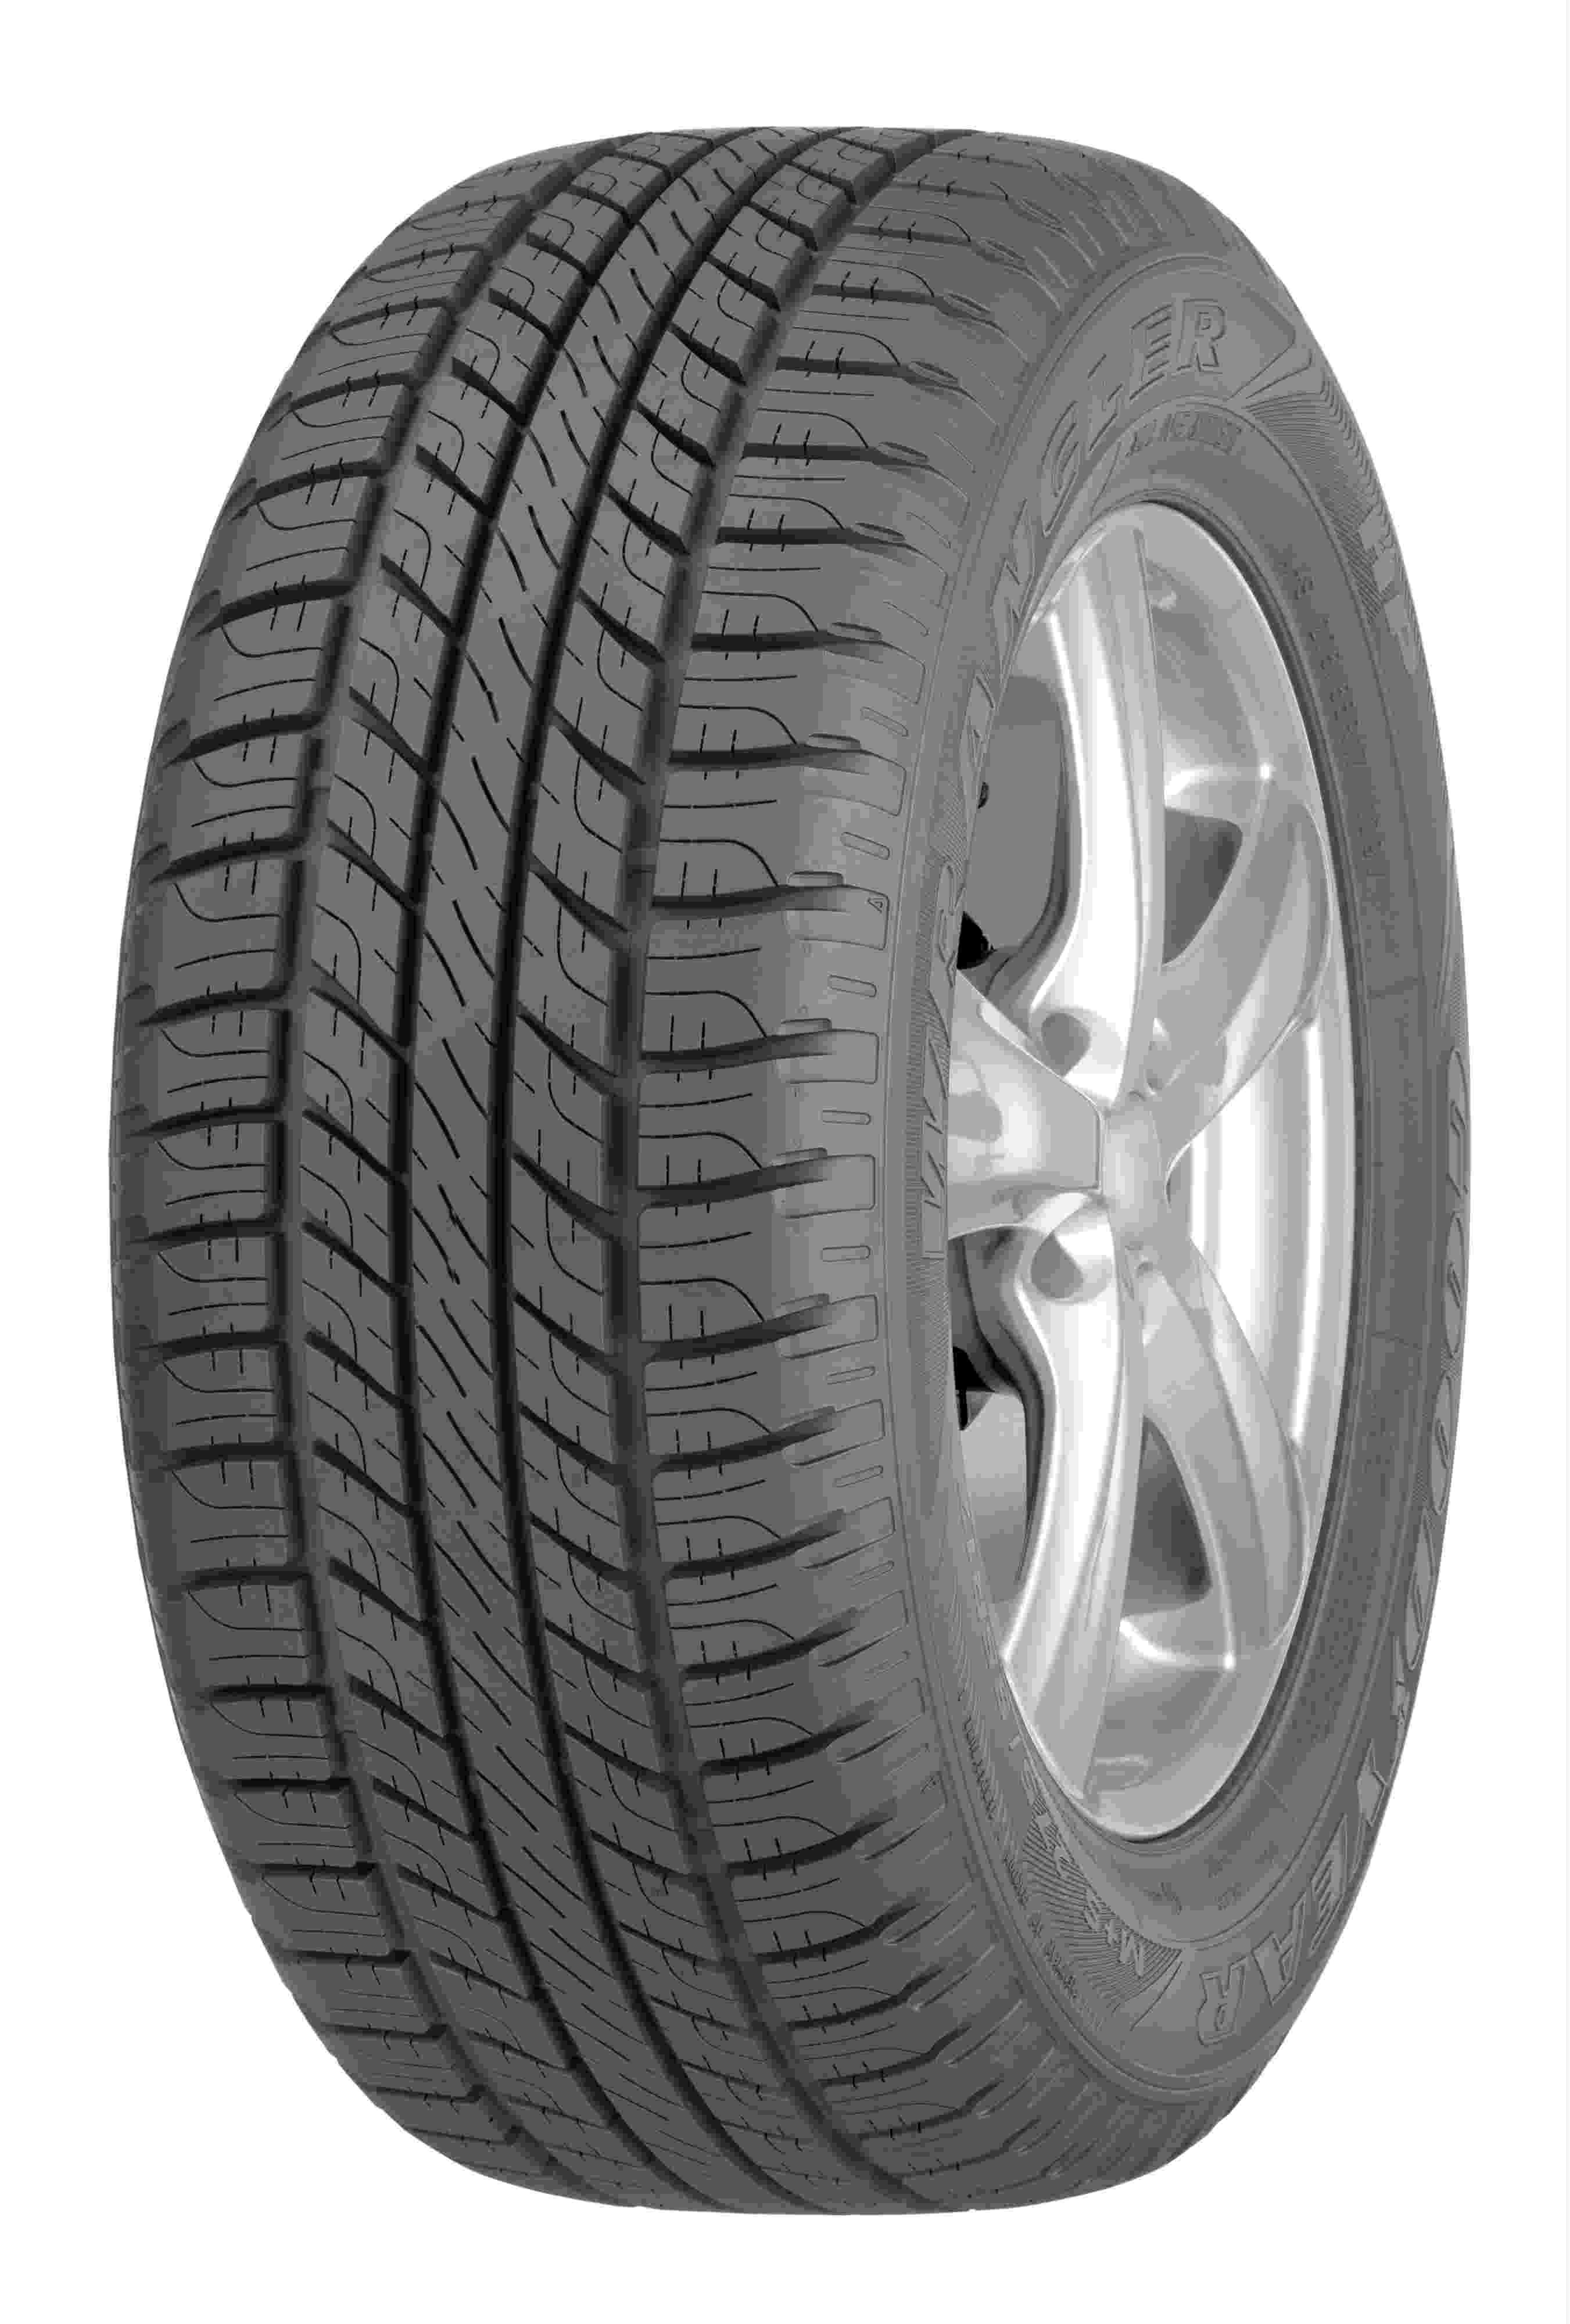 GOODYEAR WRL HP ALL WEATHER 255/65R17